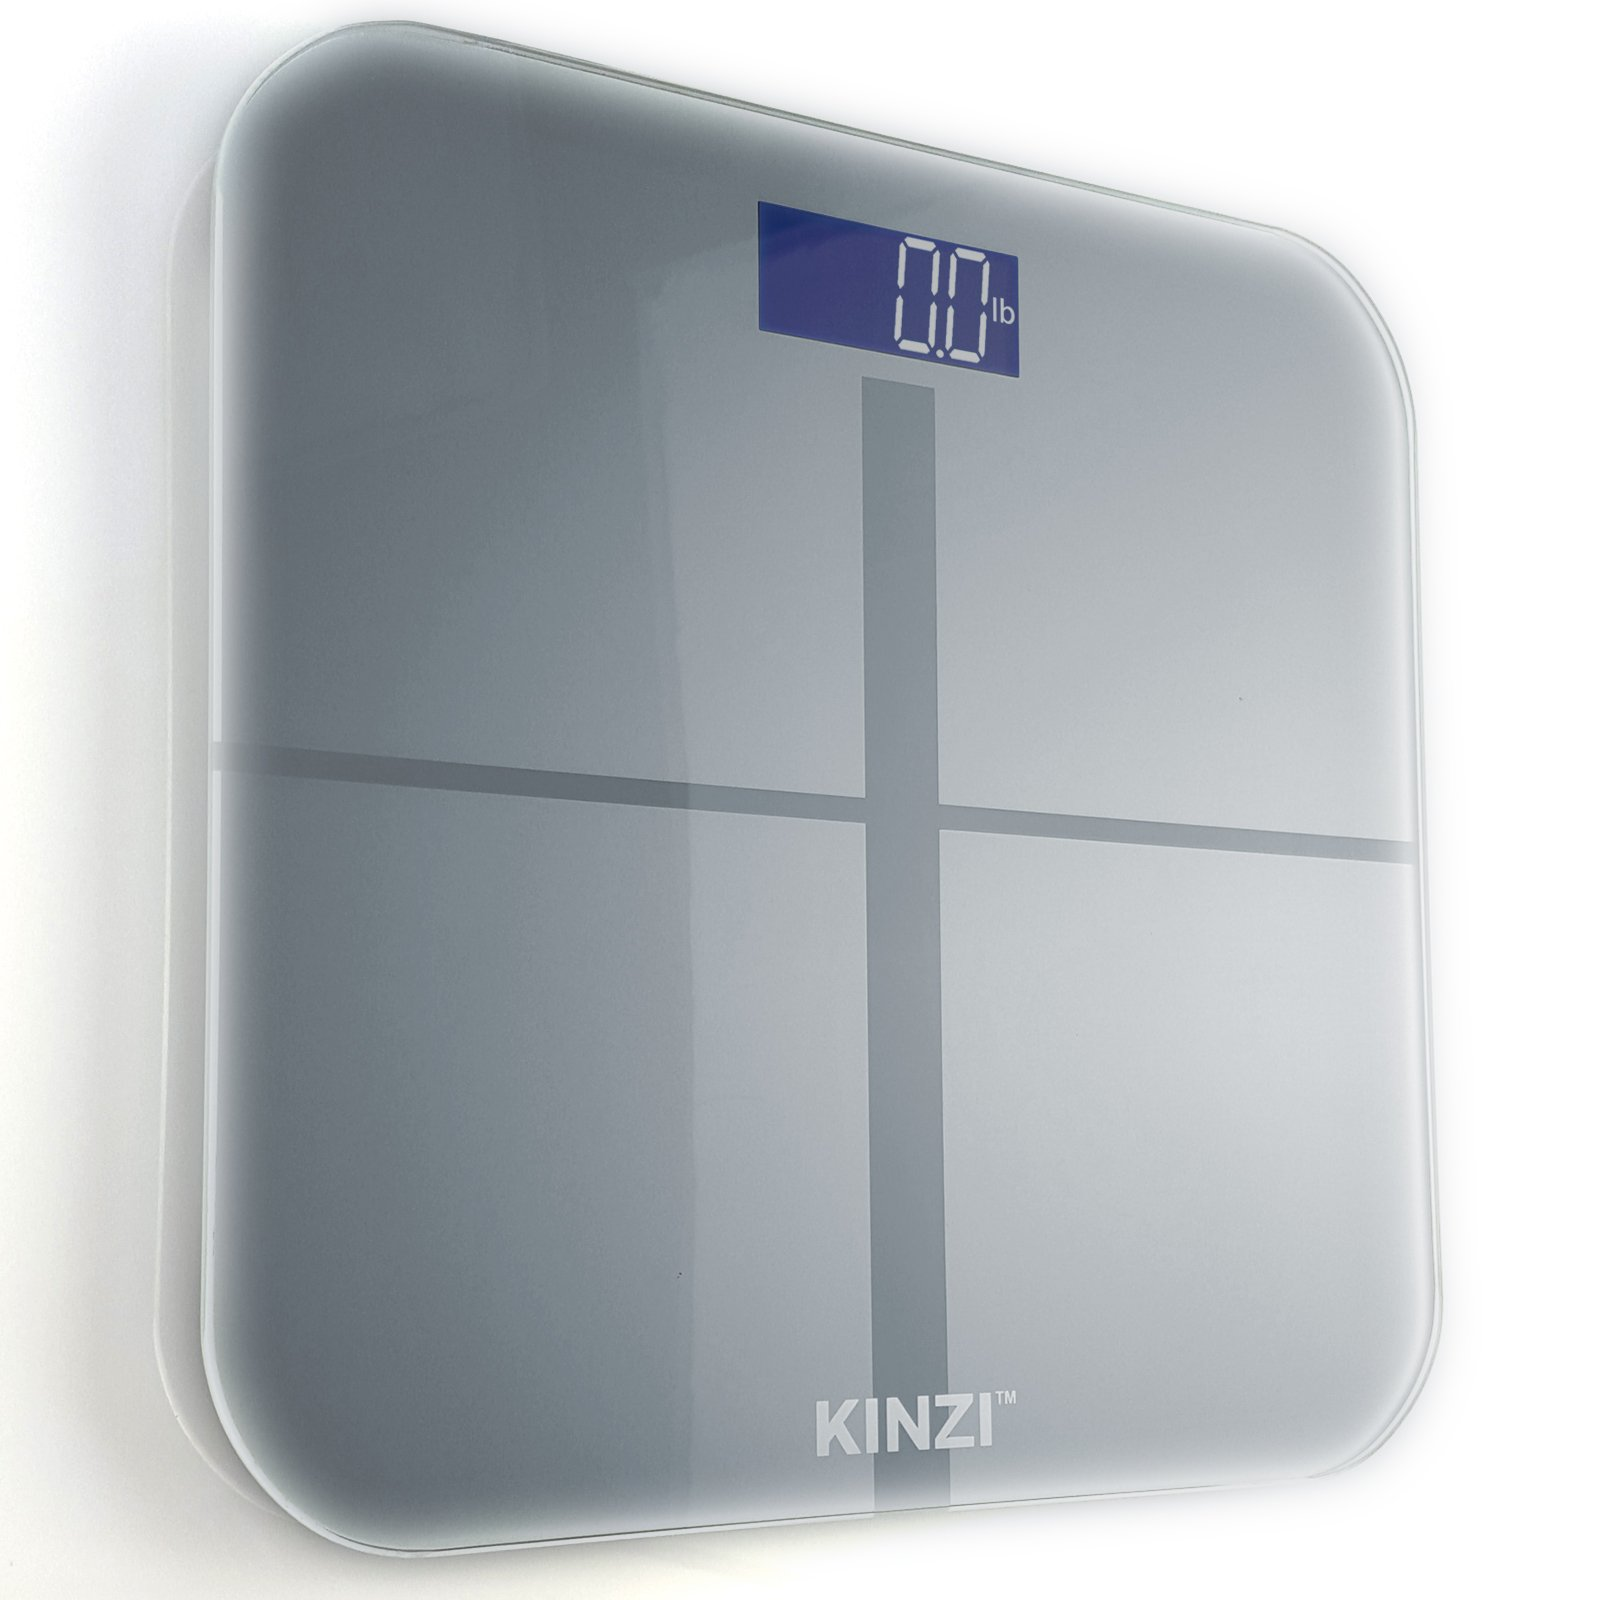 Kinzi Precision Digital Bathroom Scale w/ Extra Large Lighted Display, 400 lb. Capacity and ''Step-On'' Technology by Kinzi (Image #3)